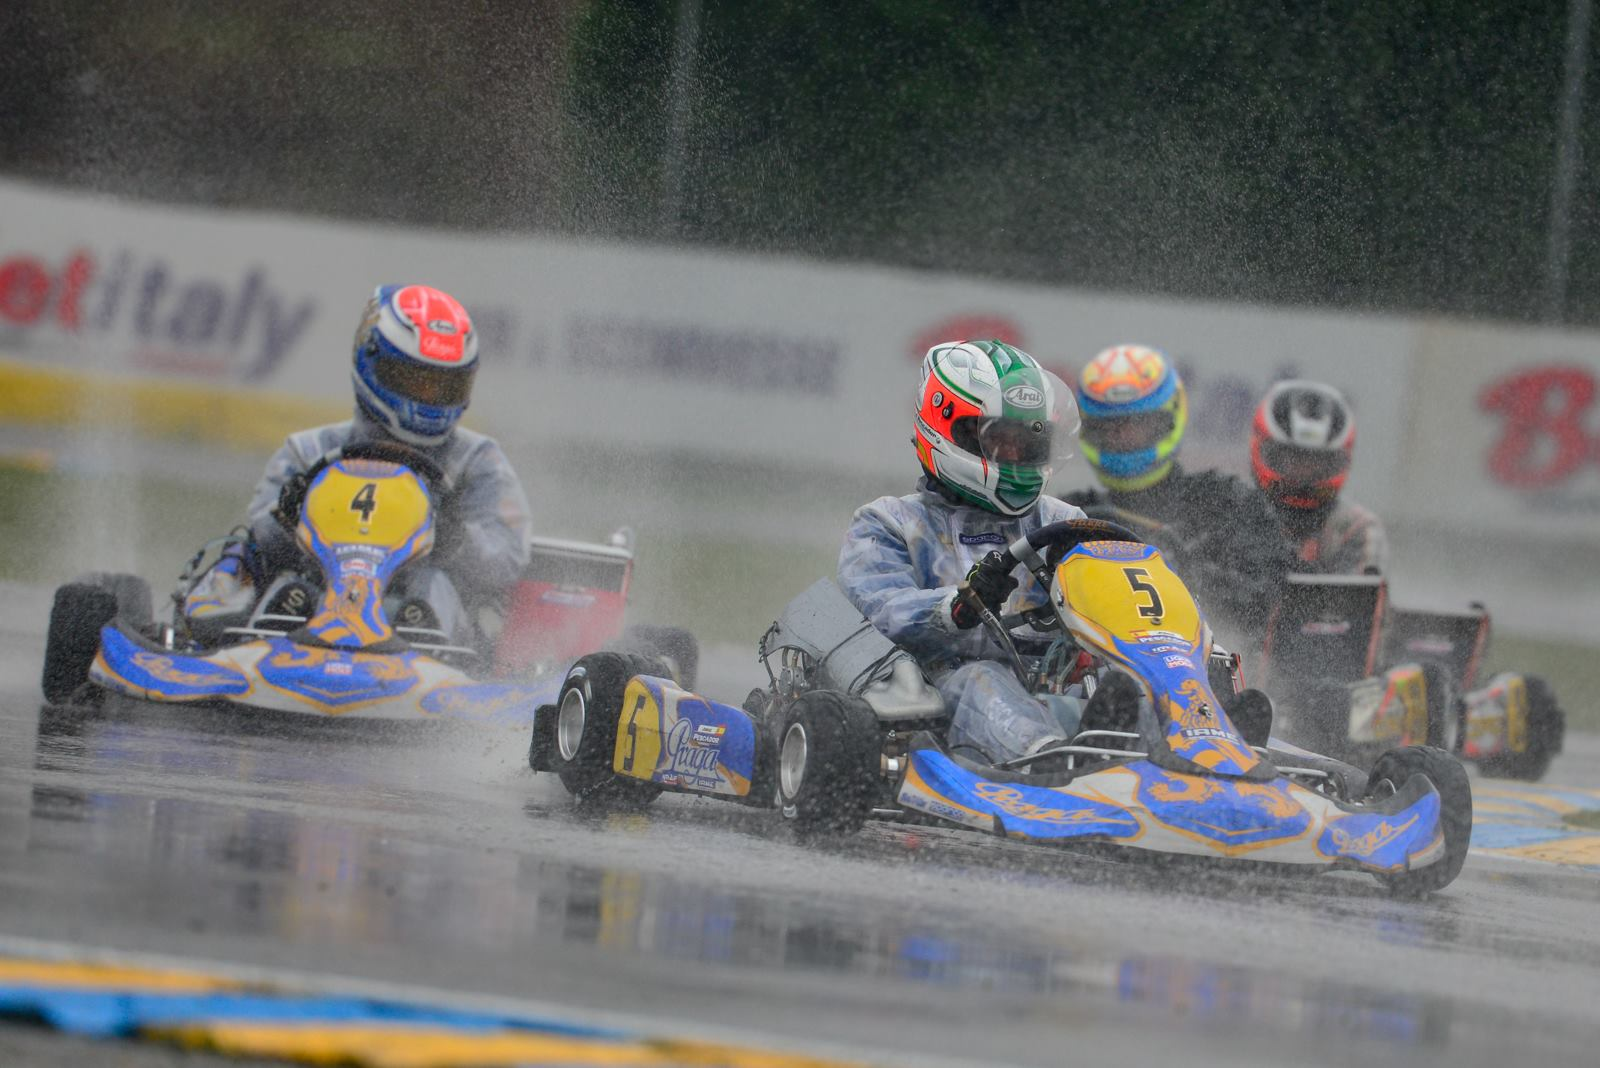 Rainy race at Castelletto – WSK Super Master series